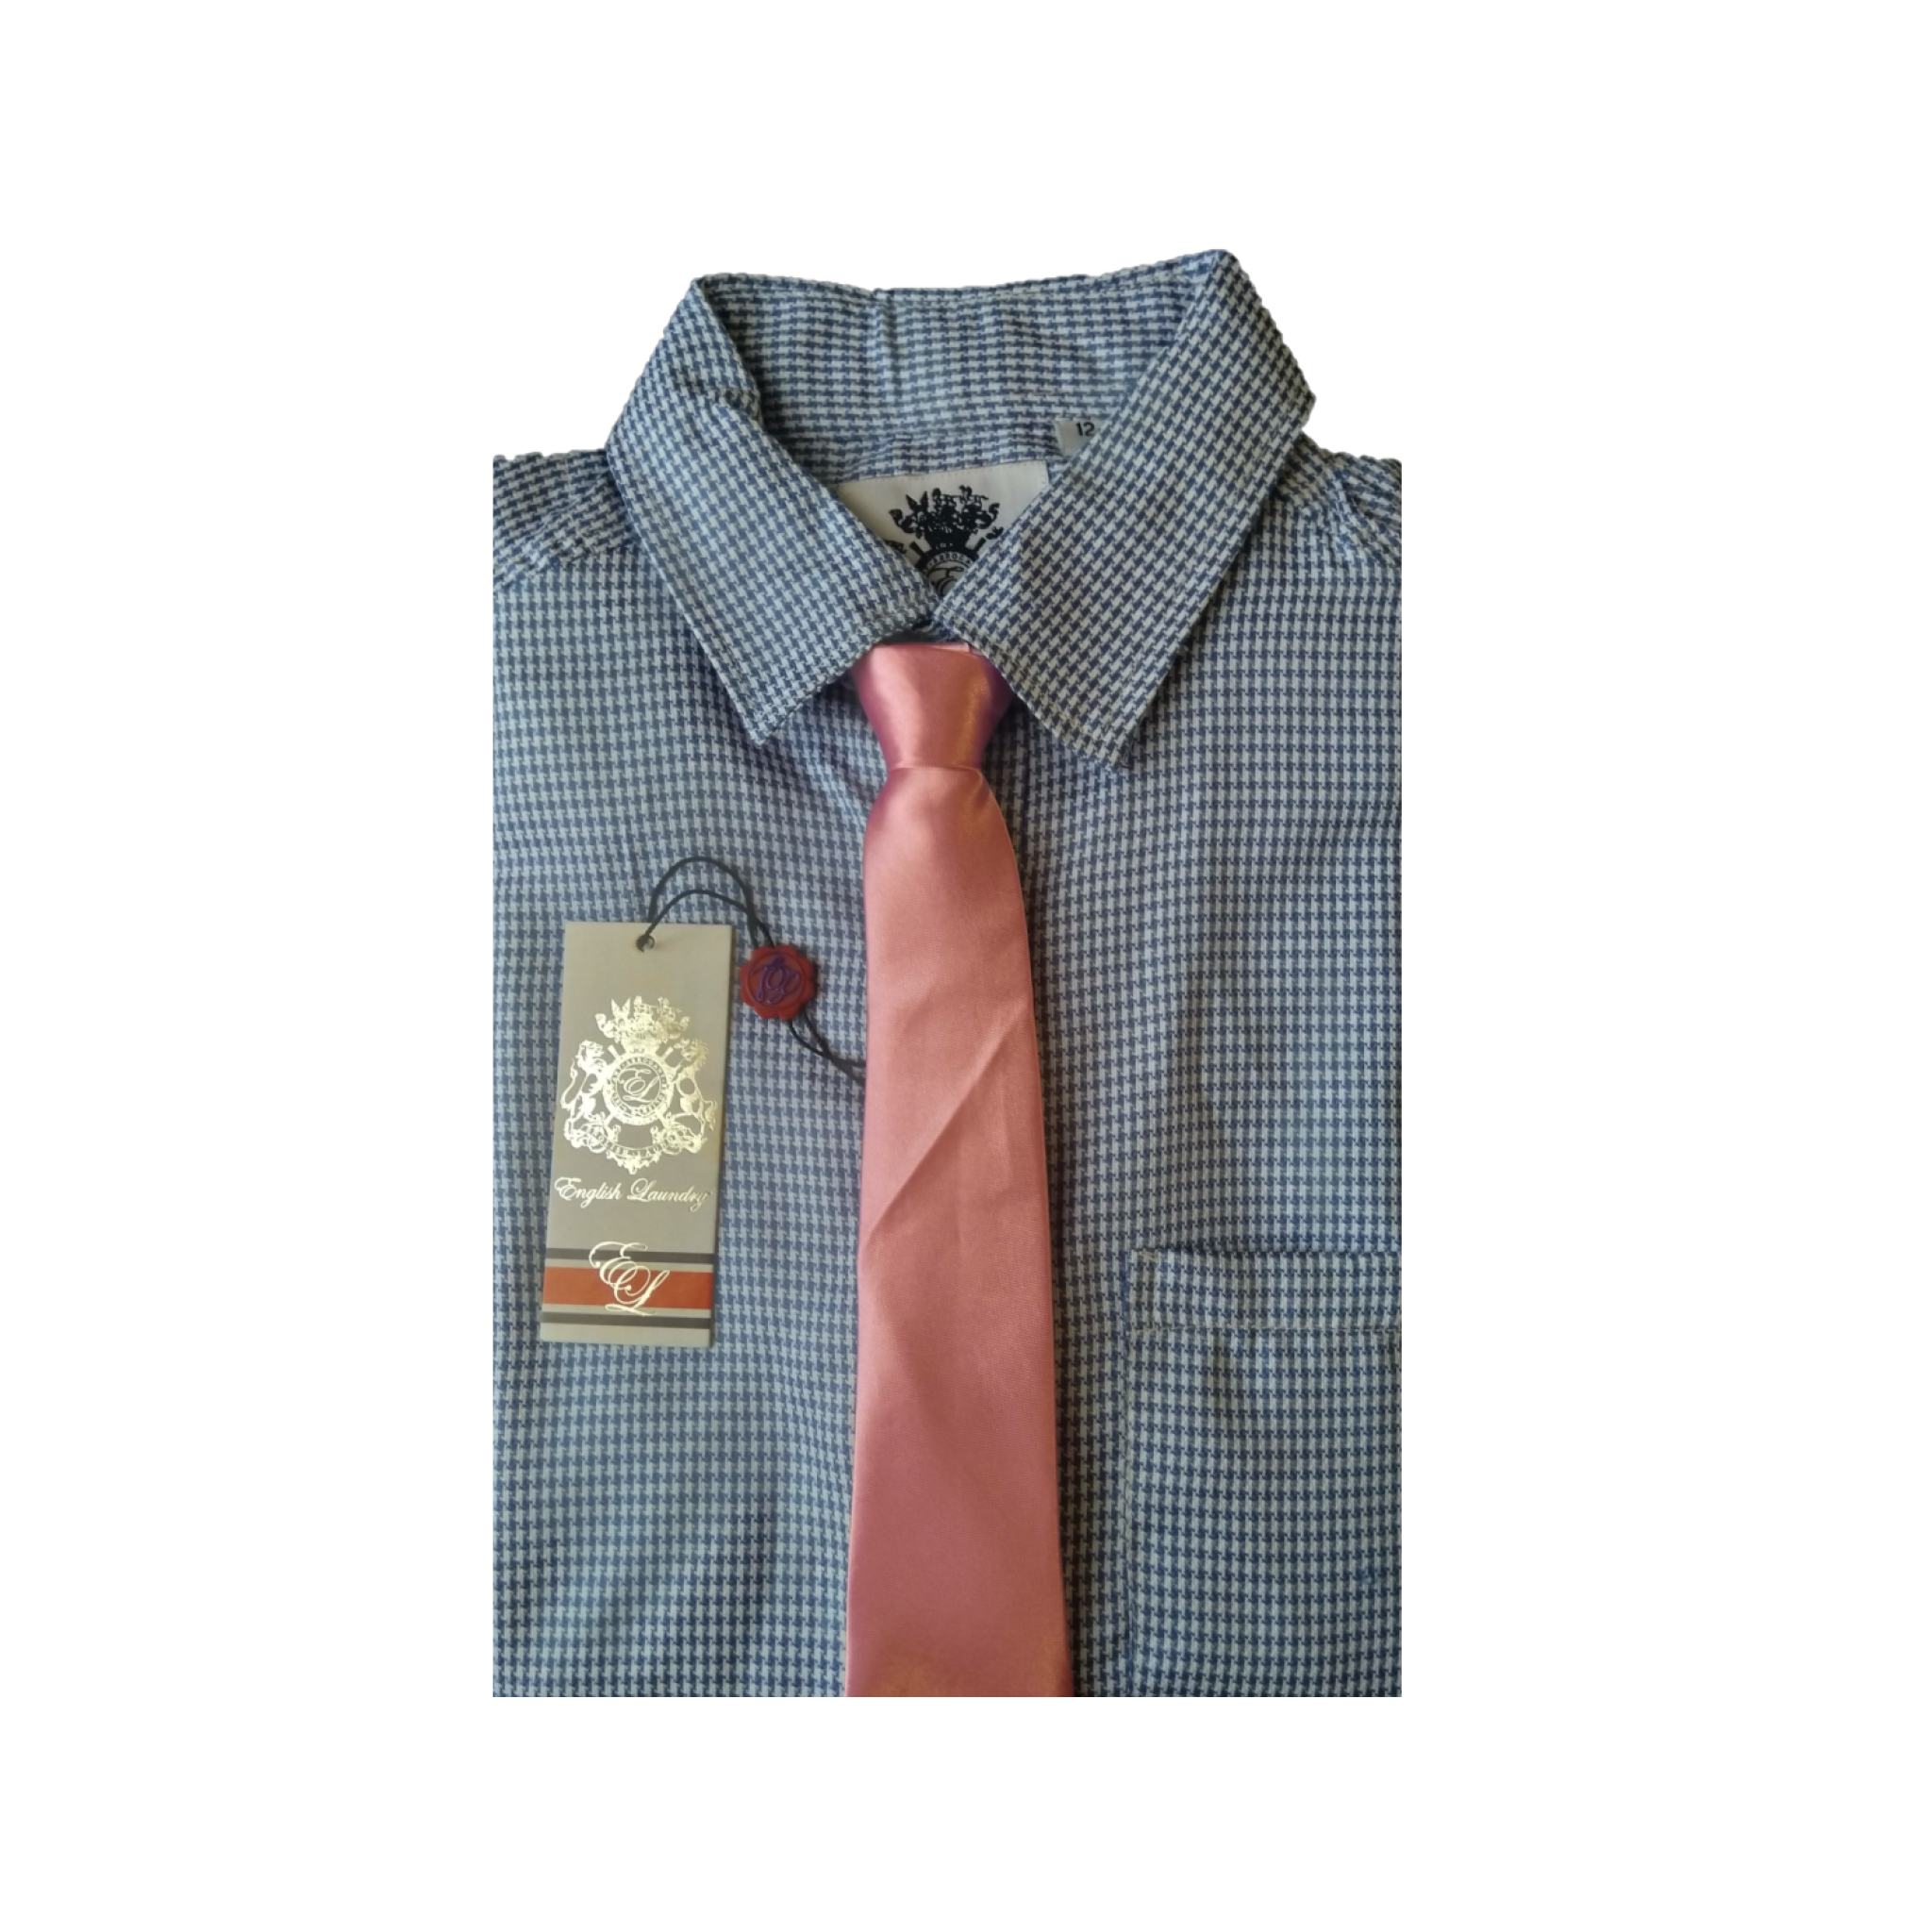 English Laundry Men's Blue Mini Check Dress Shirt and Pink Necktie, Size 12 - MGworld